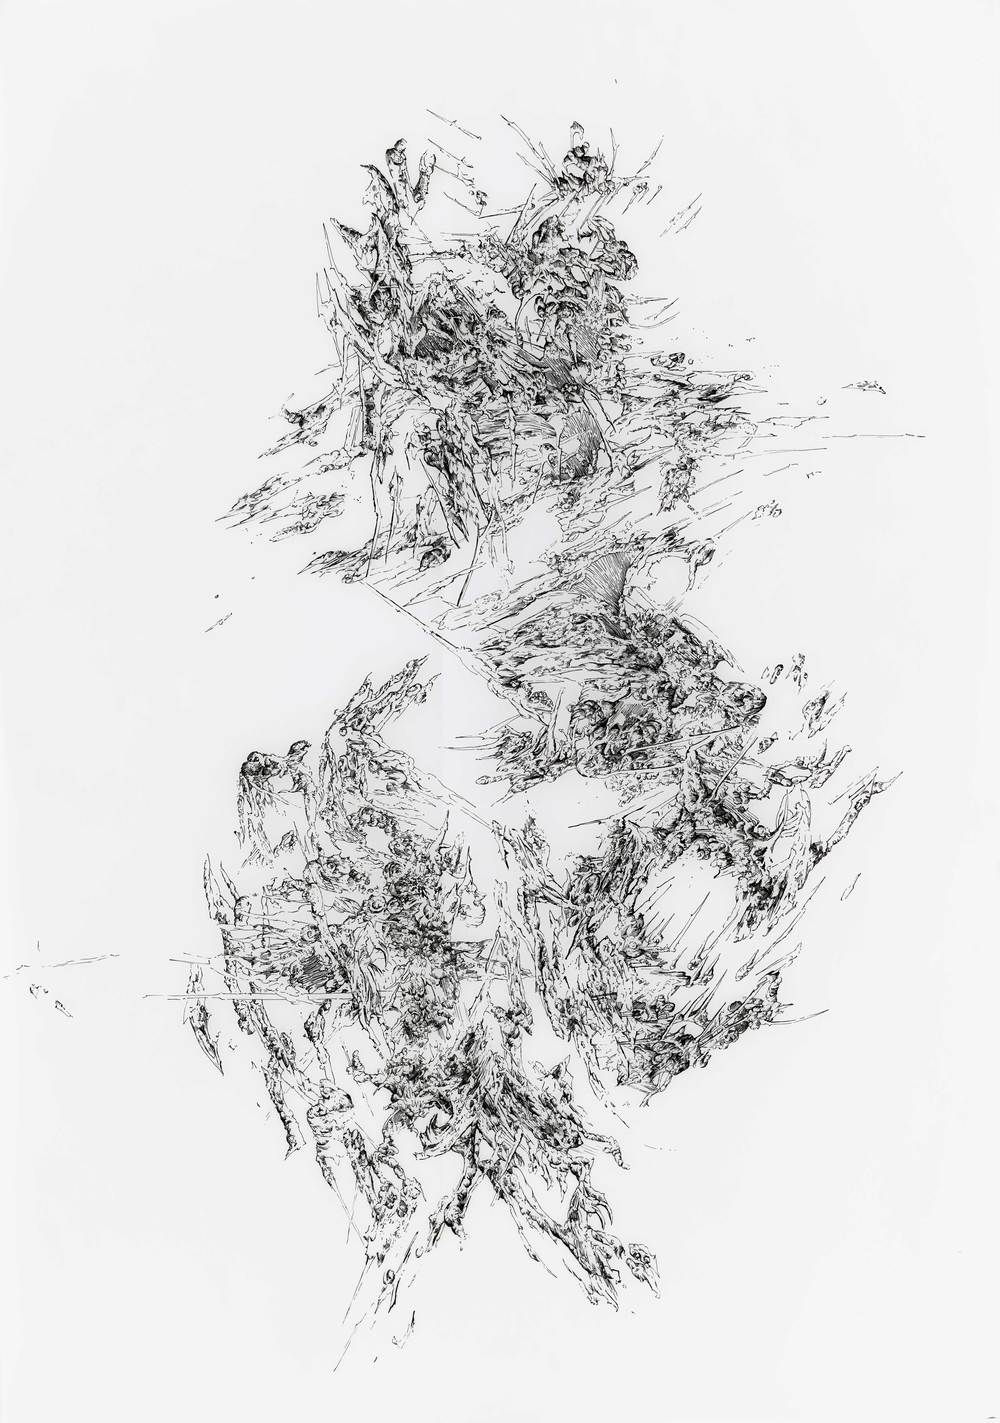 Bettina Krieg | P 104 Untitled | Ink on Transparent Paper | 100 x 70 cm | 2012